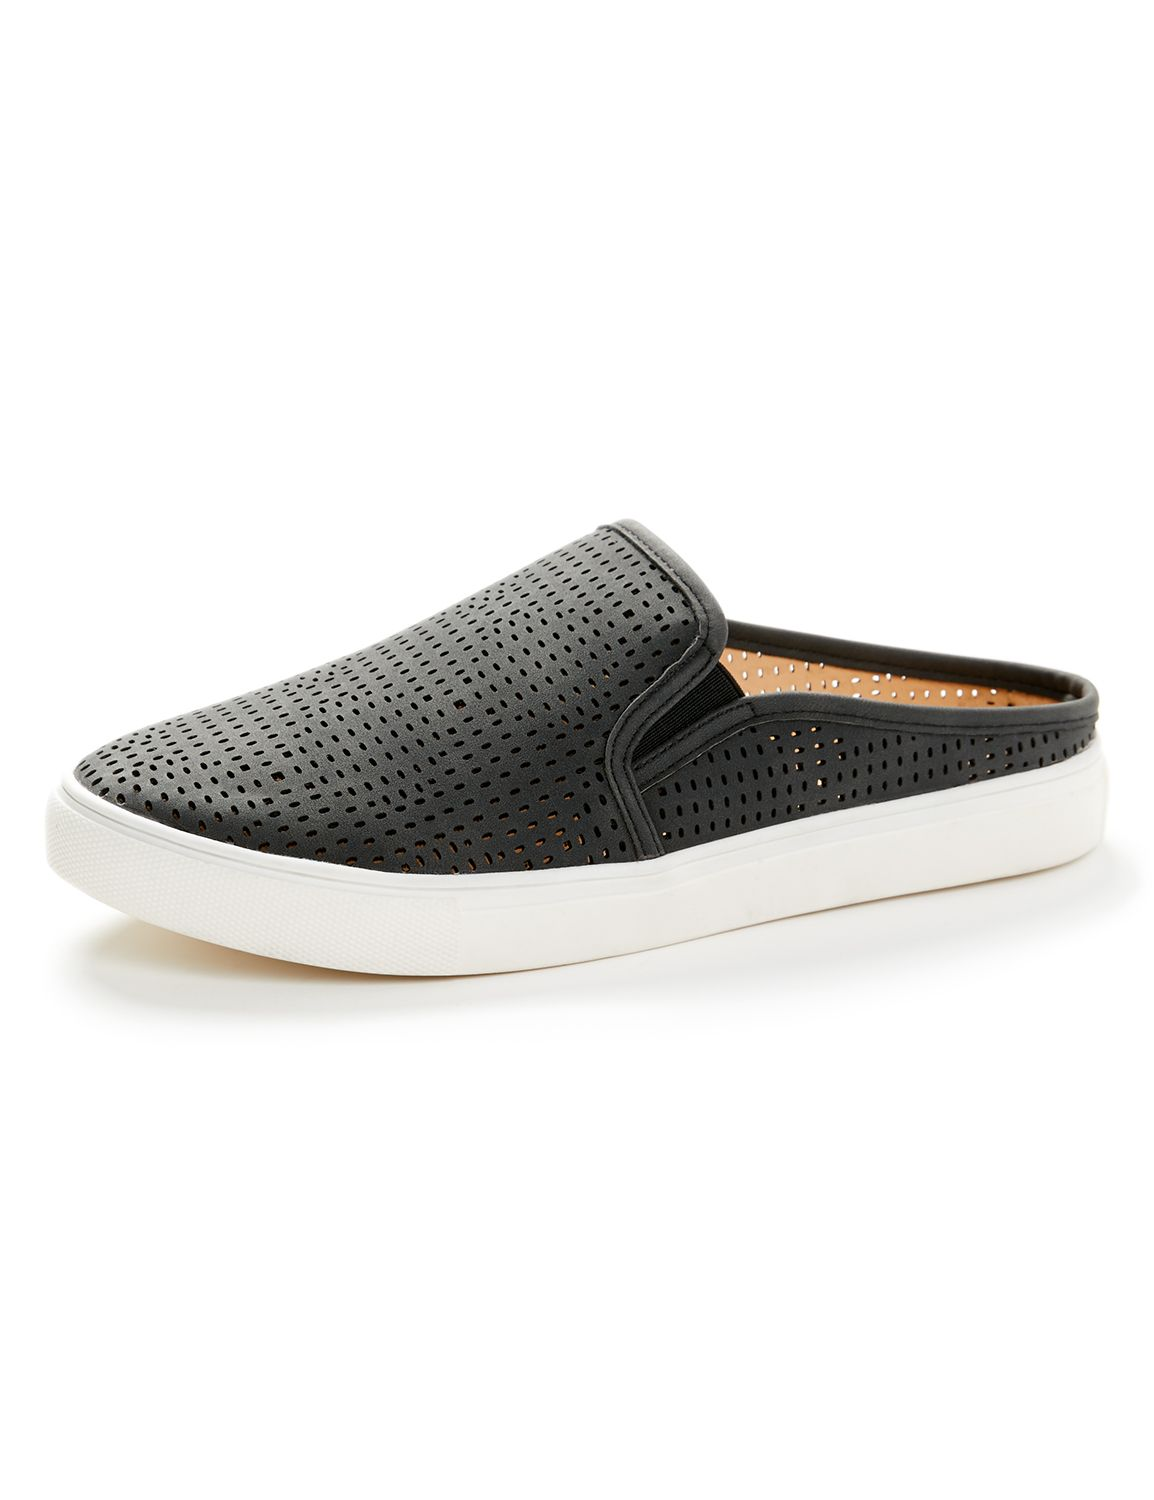 Good Soles Slip-On Sneaker Perf Slip On Sneaker M24813 MP-300097776